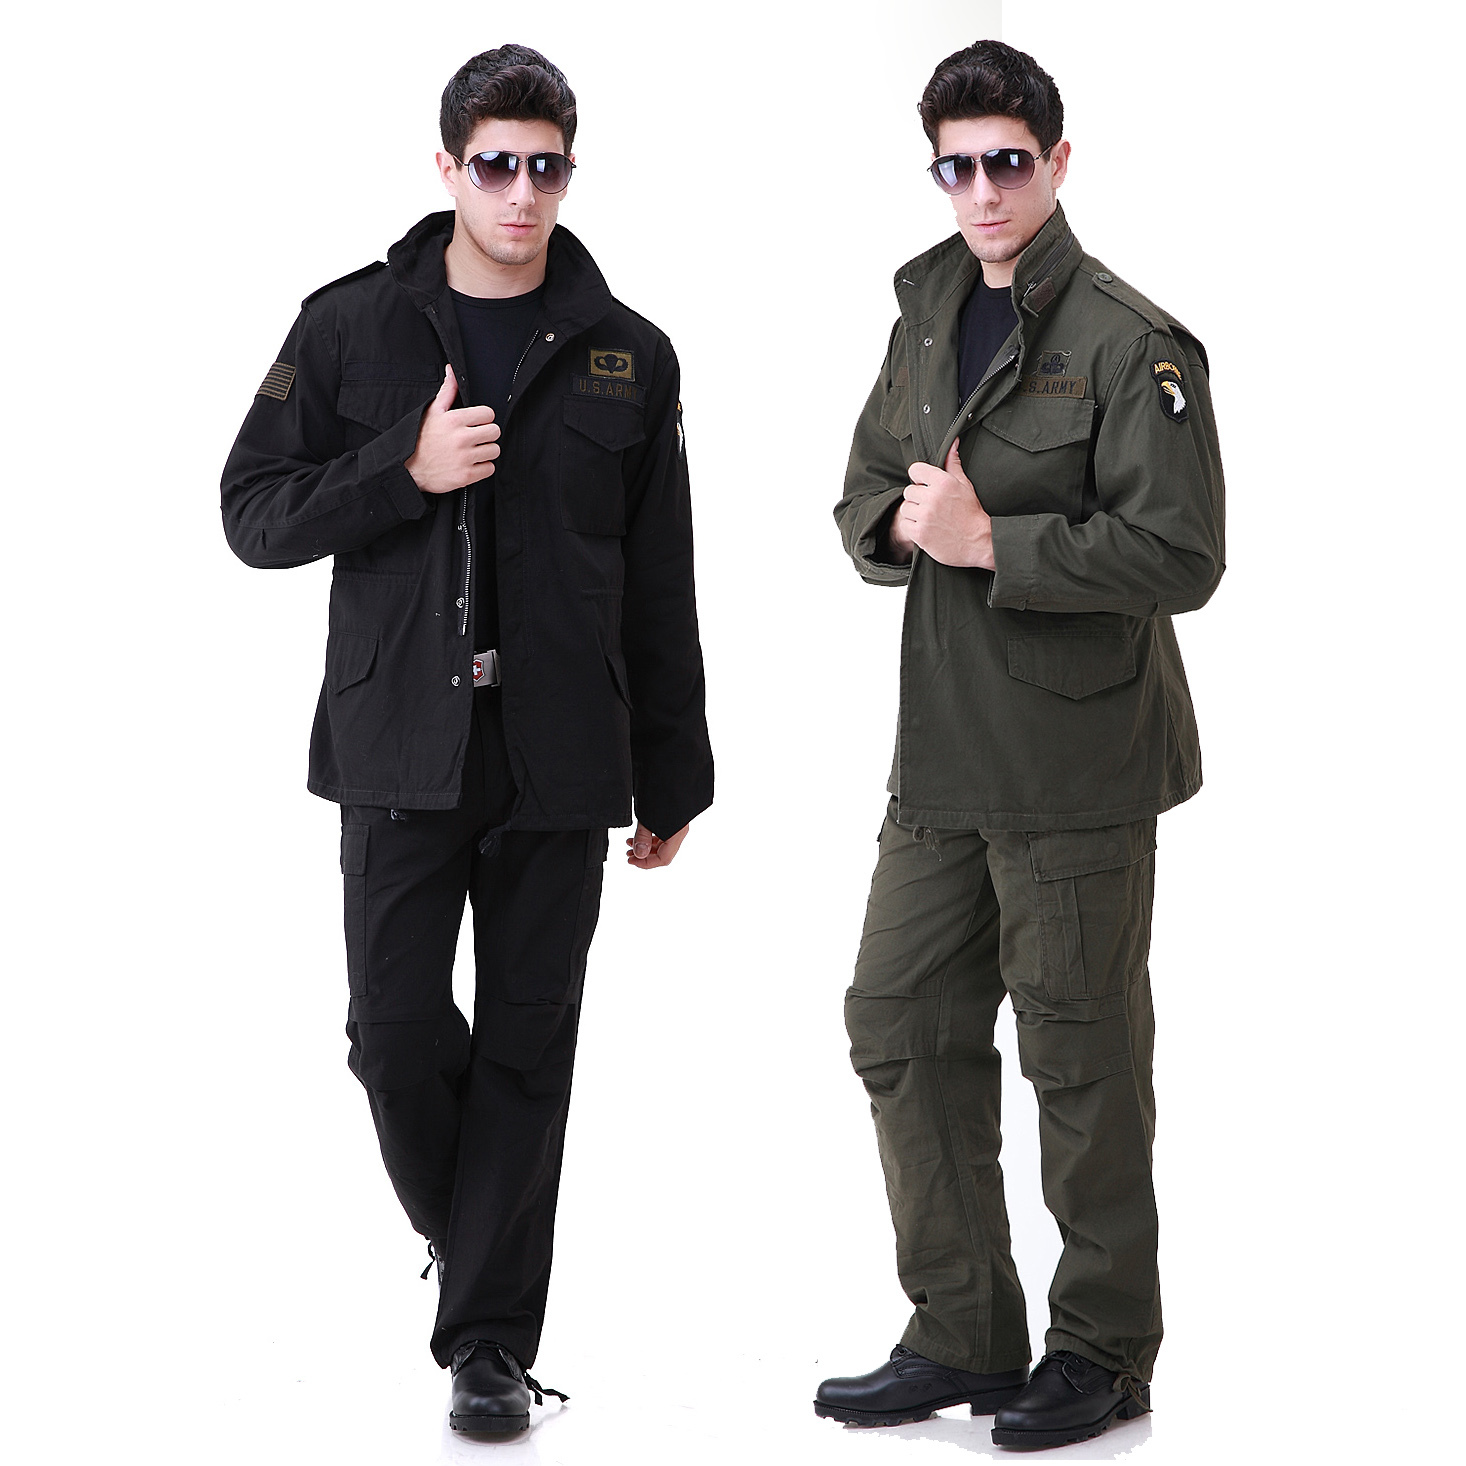 Military wild line of outdoor leisure clothing military fans 101 m65 airborne training uniform suits for men genuine spring and autumn